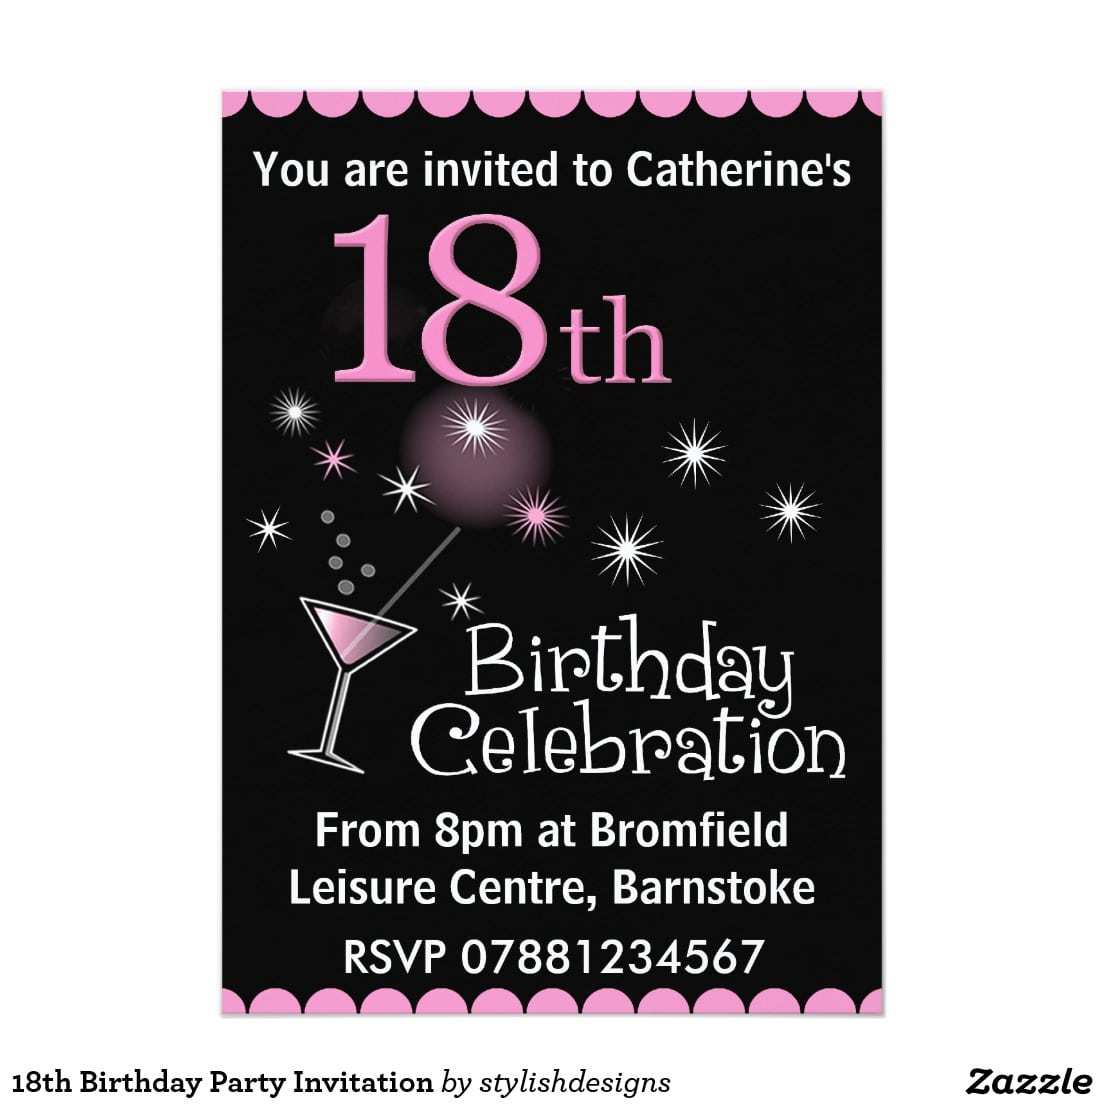 Invitations For 18th Birthday Party Image Collections